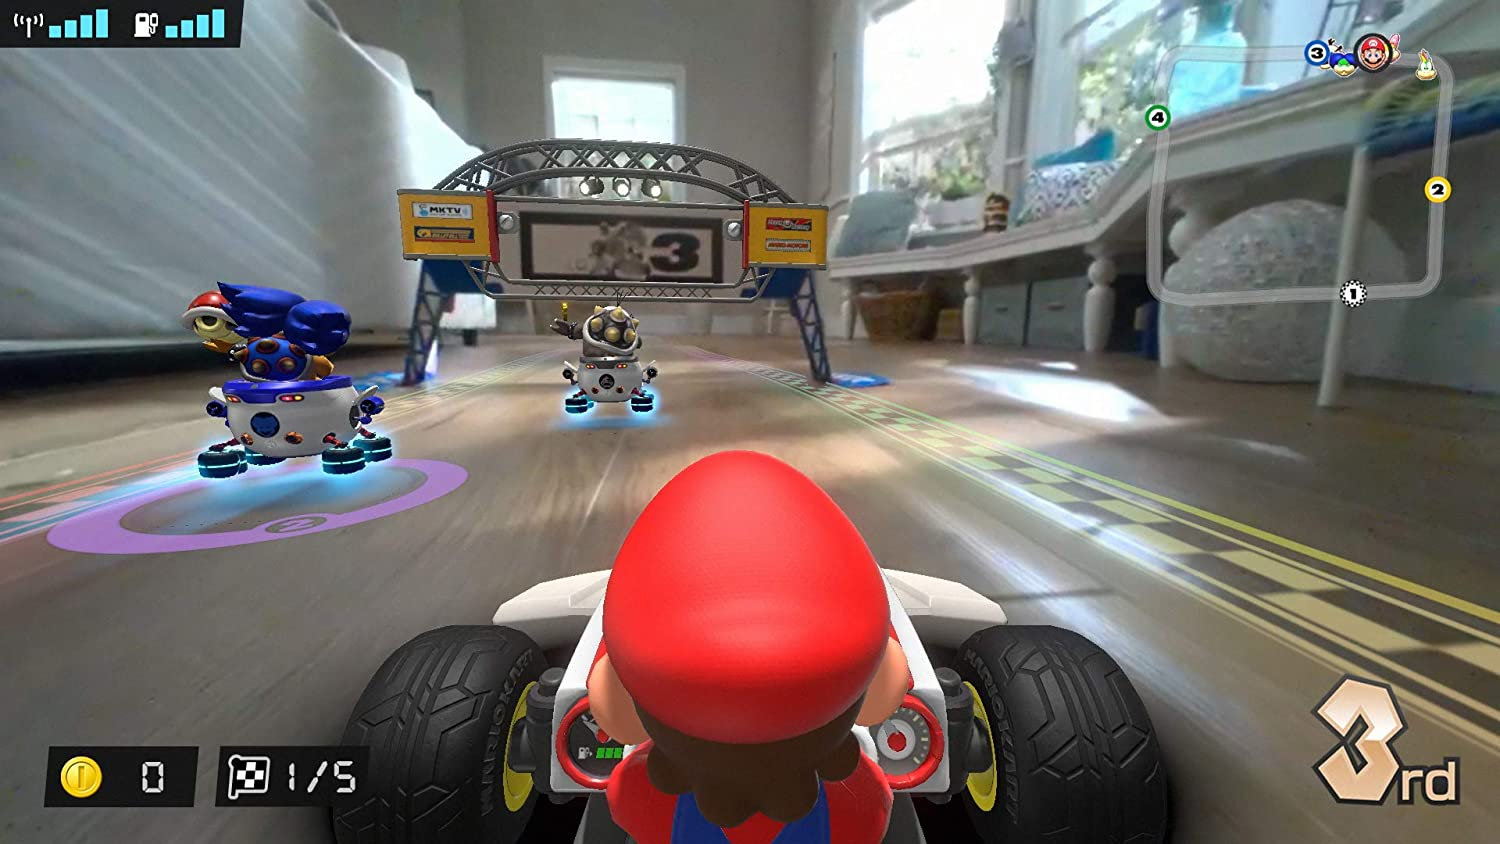 Mario Kart Live Home Circuit Set - Game in action